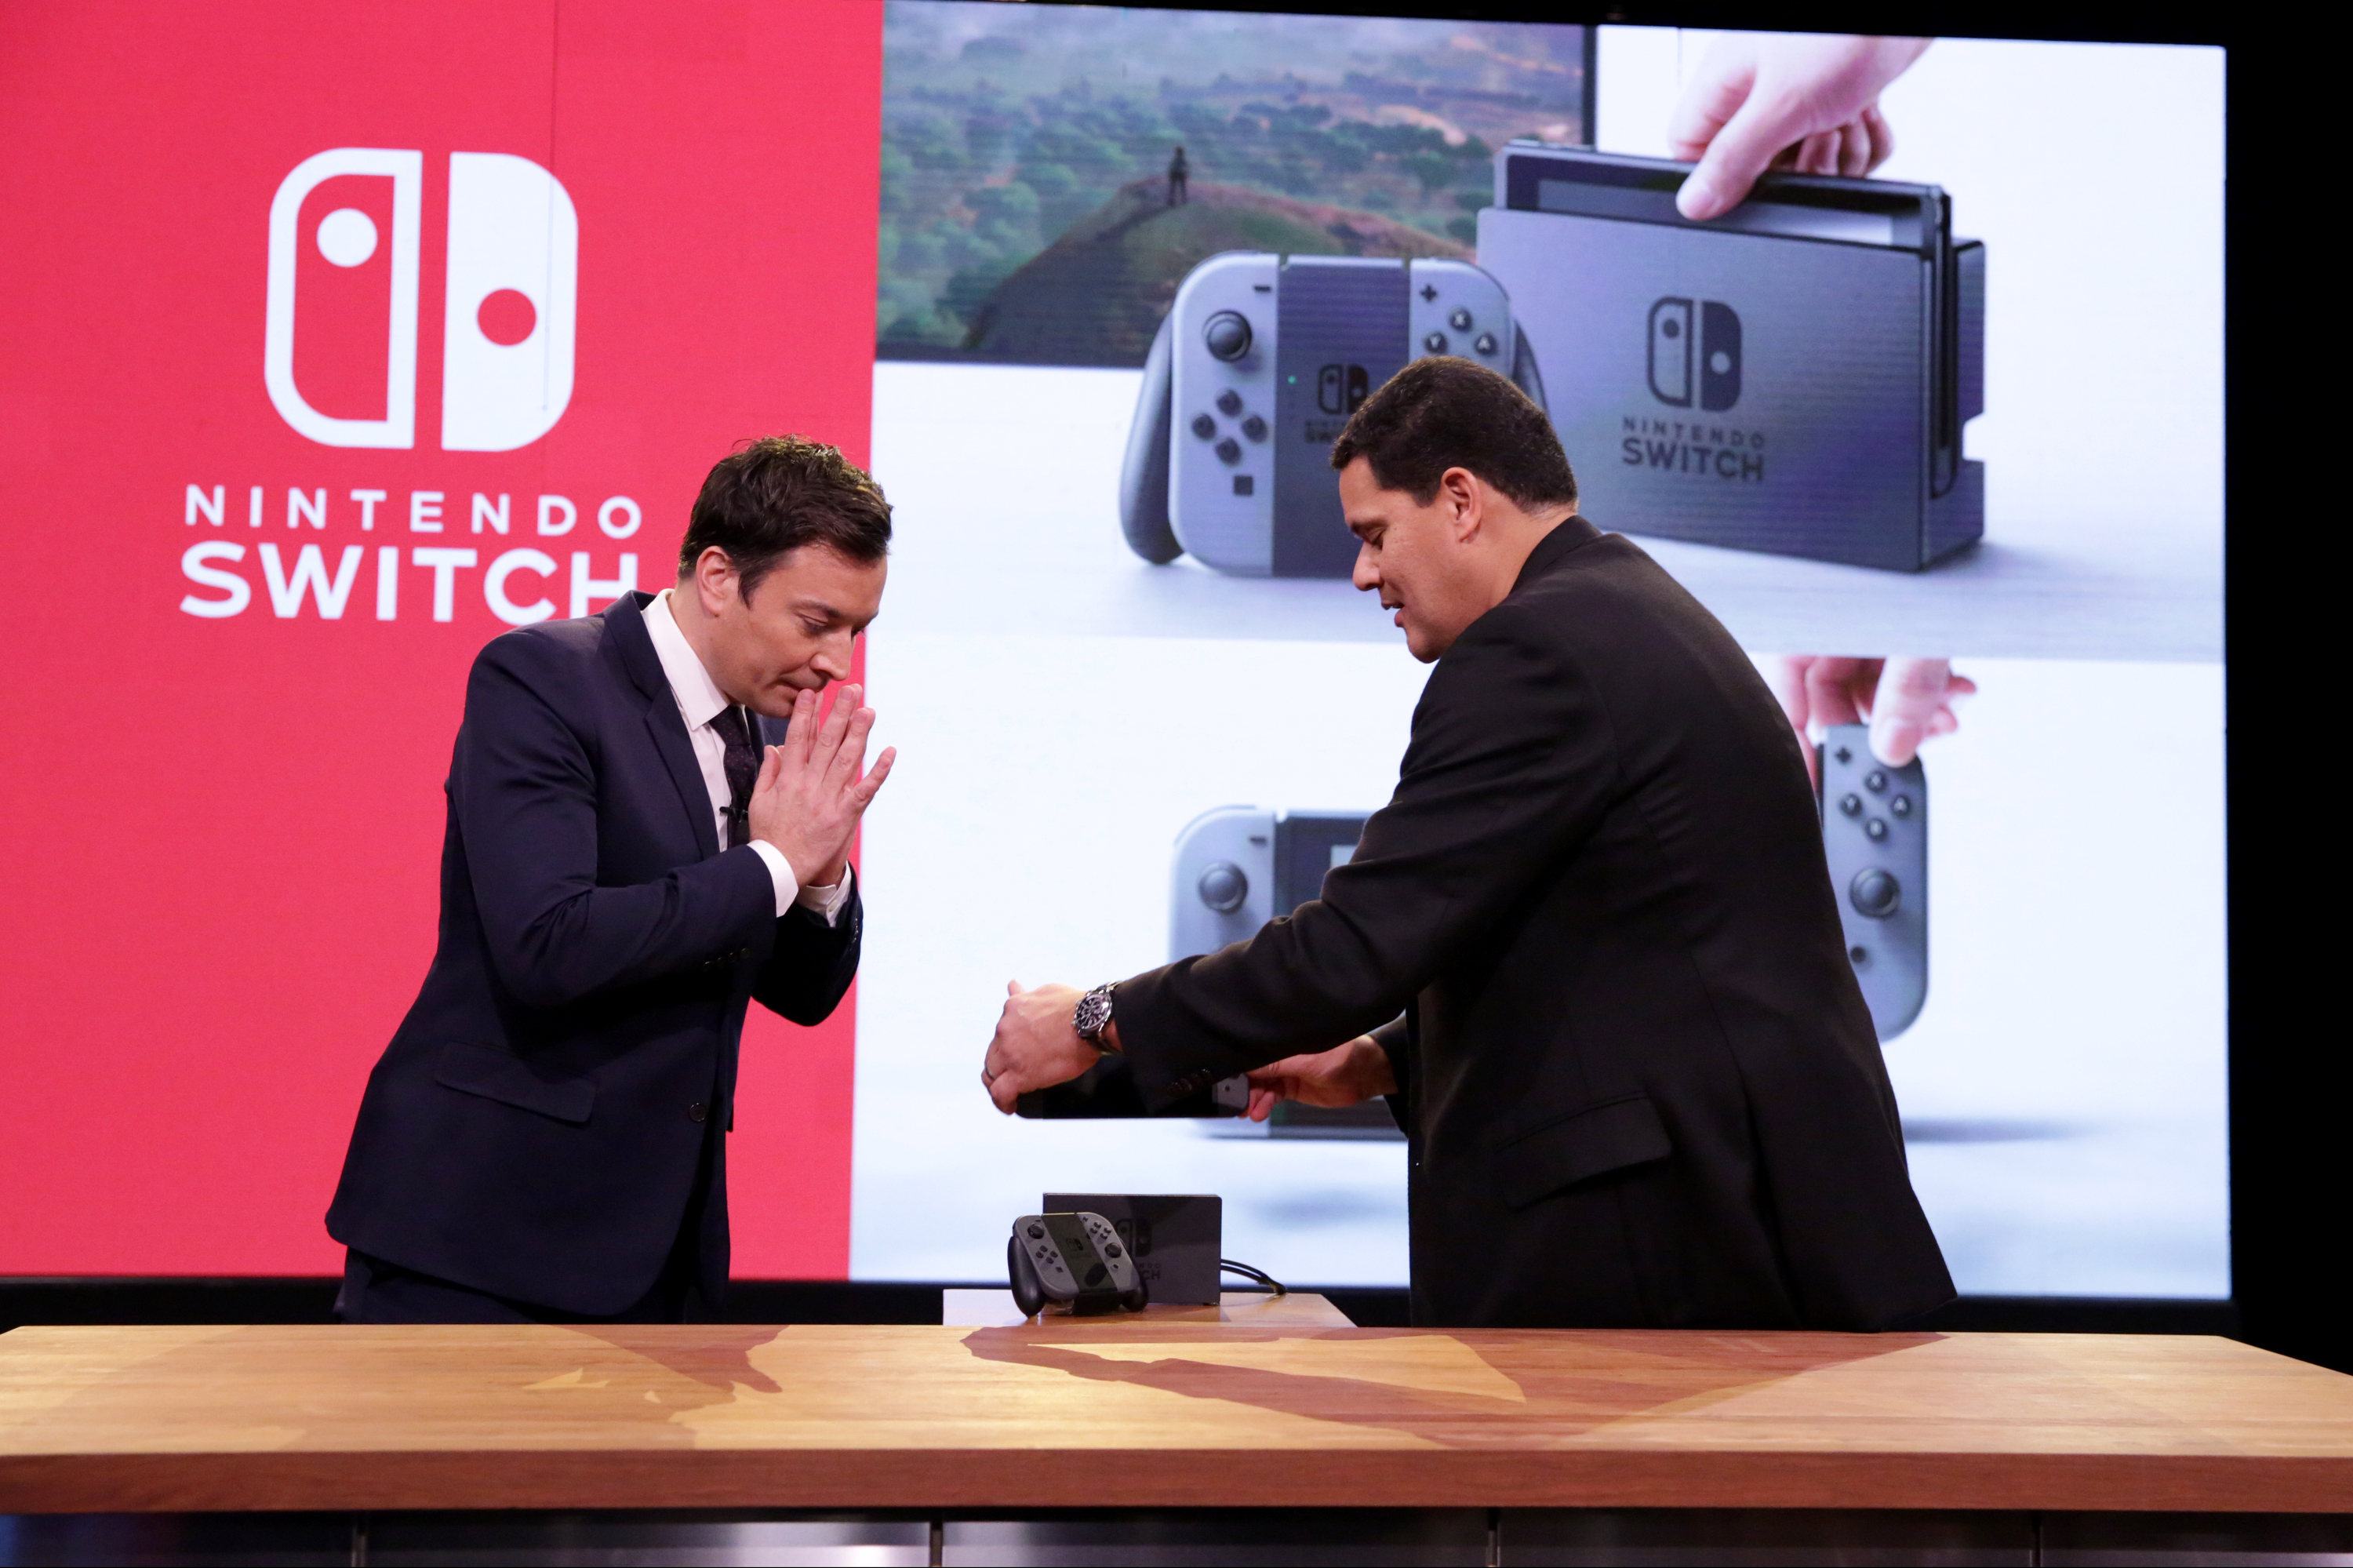 Host Jimmy Fallon and President of Nintendo America Reggie Fils-Aimé during a demonstration on December 07, 2016.